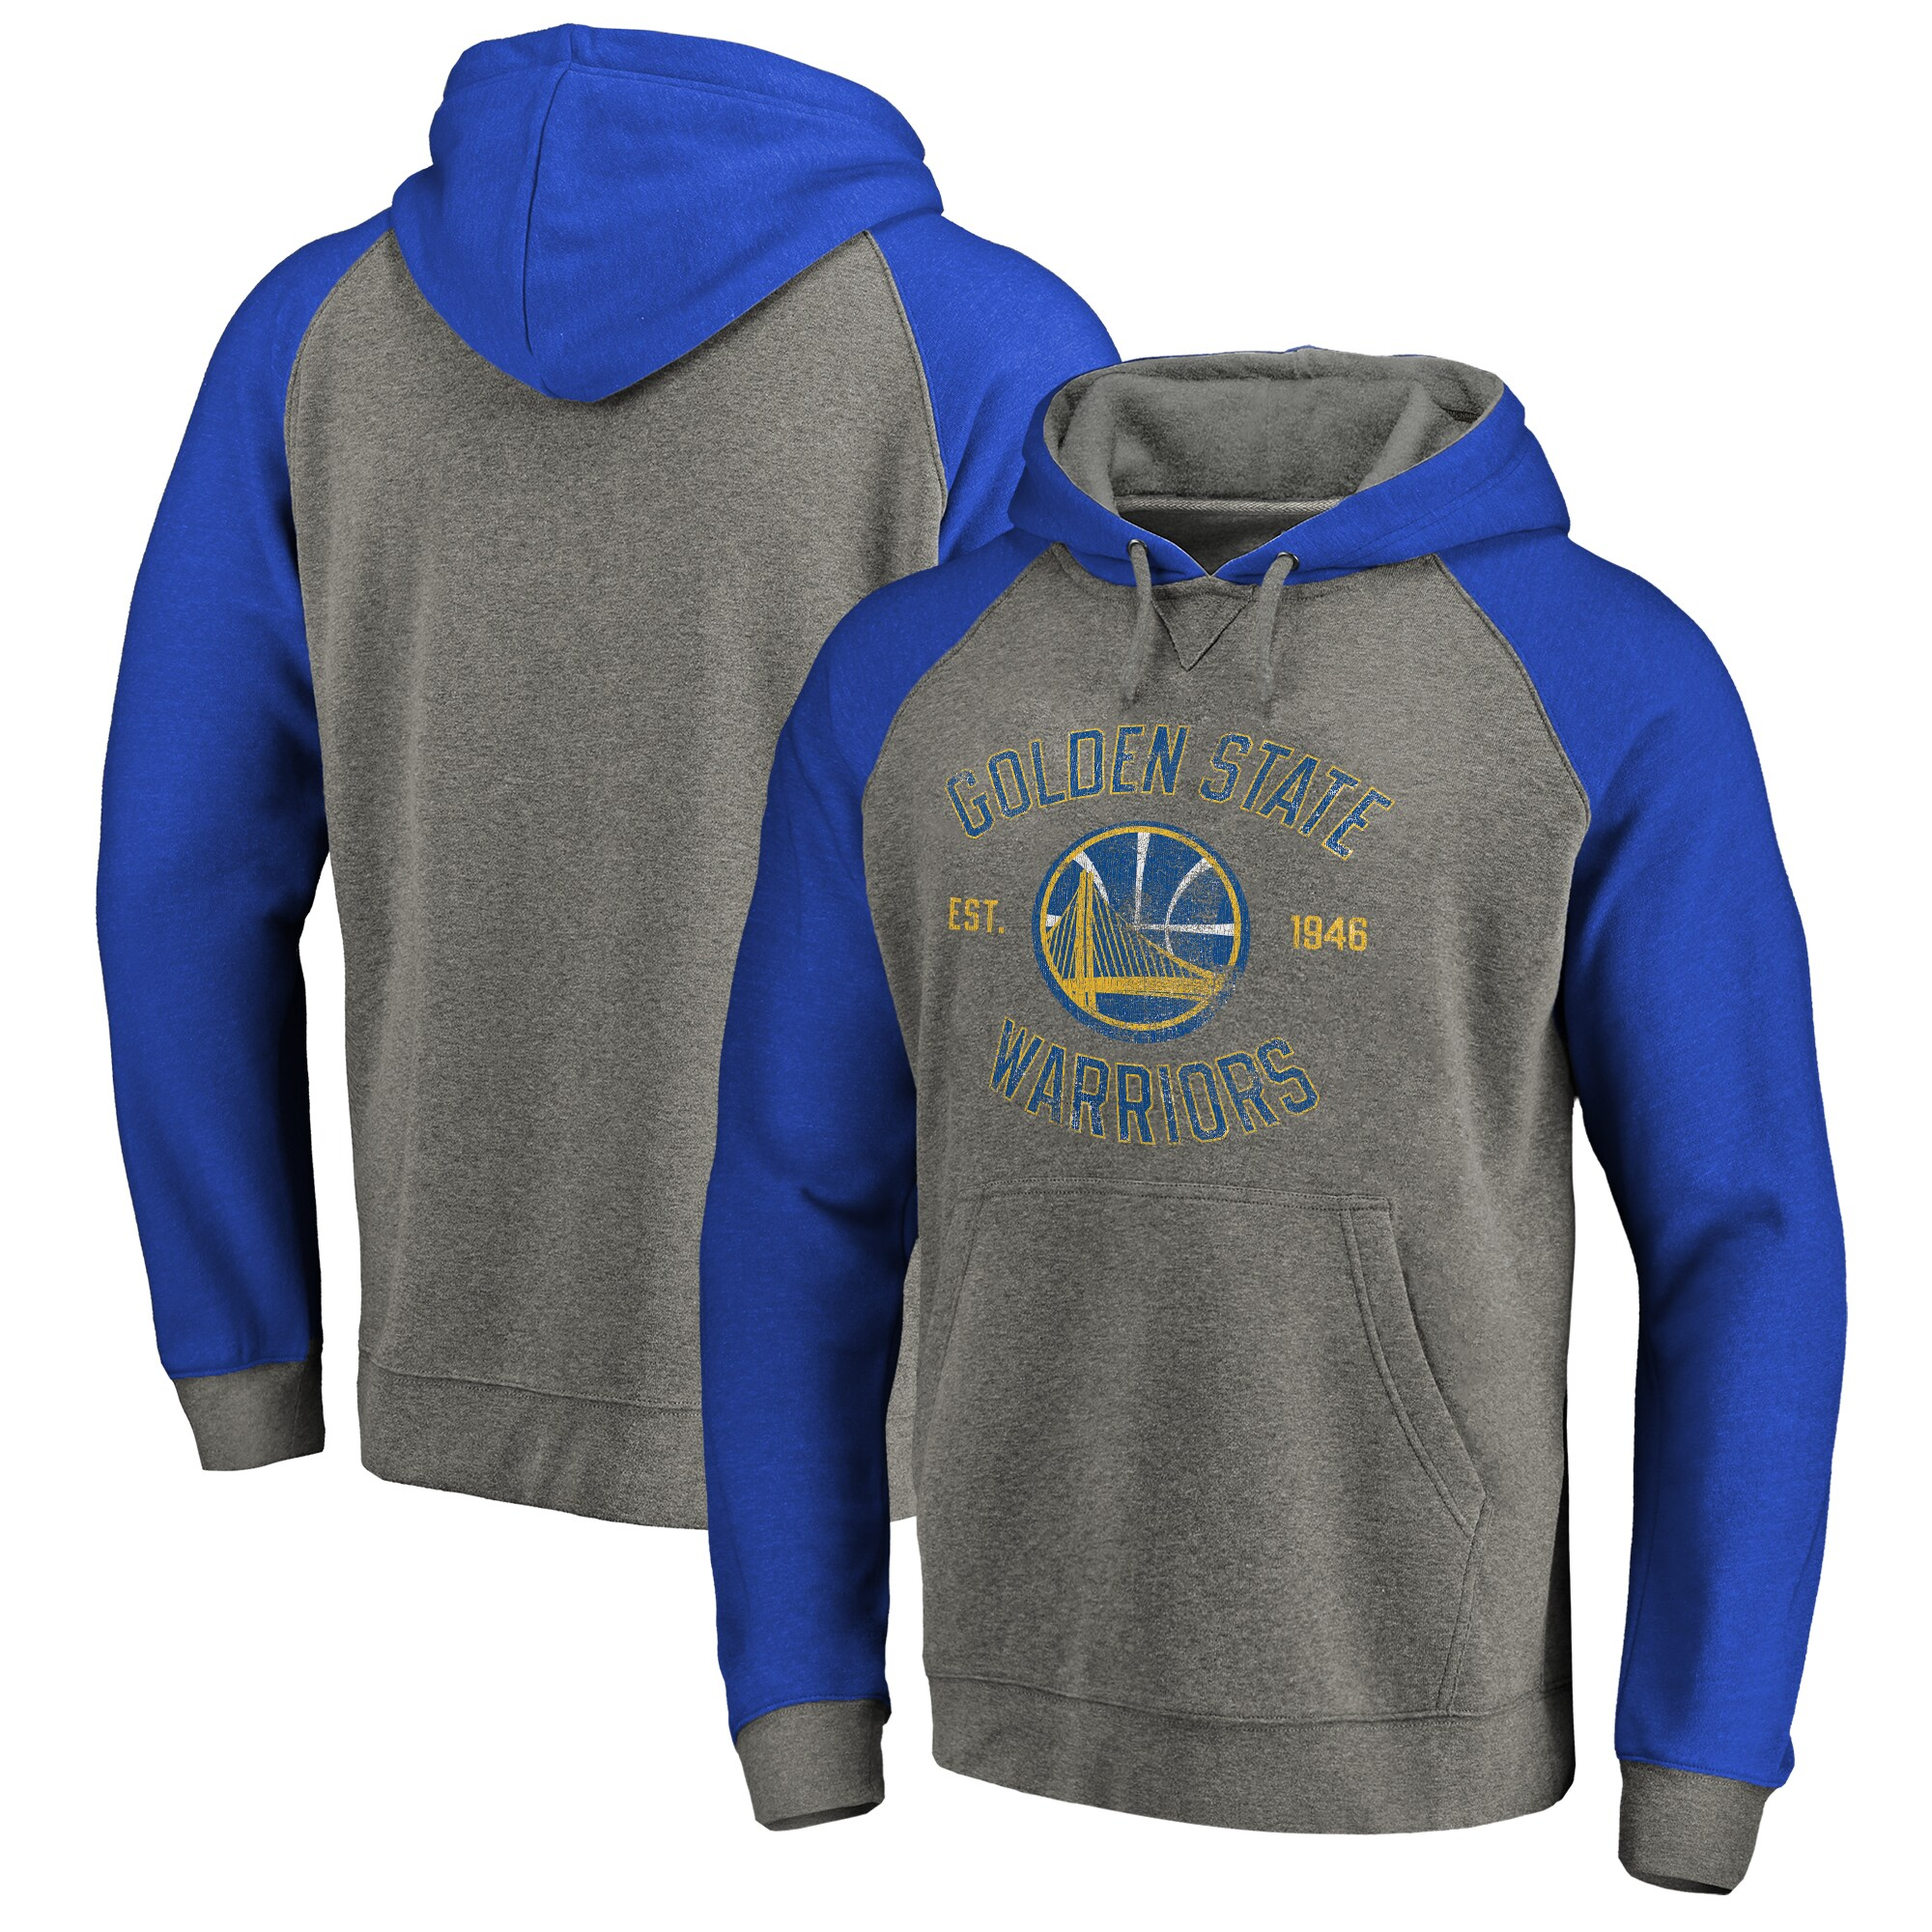 Golden State Warriors Fanatics Branded Heritage Tri-Blend Raglan Pullover Hoodie - Heathered Gray